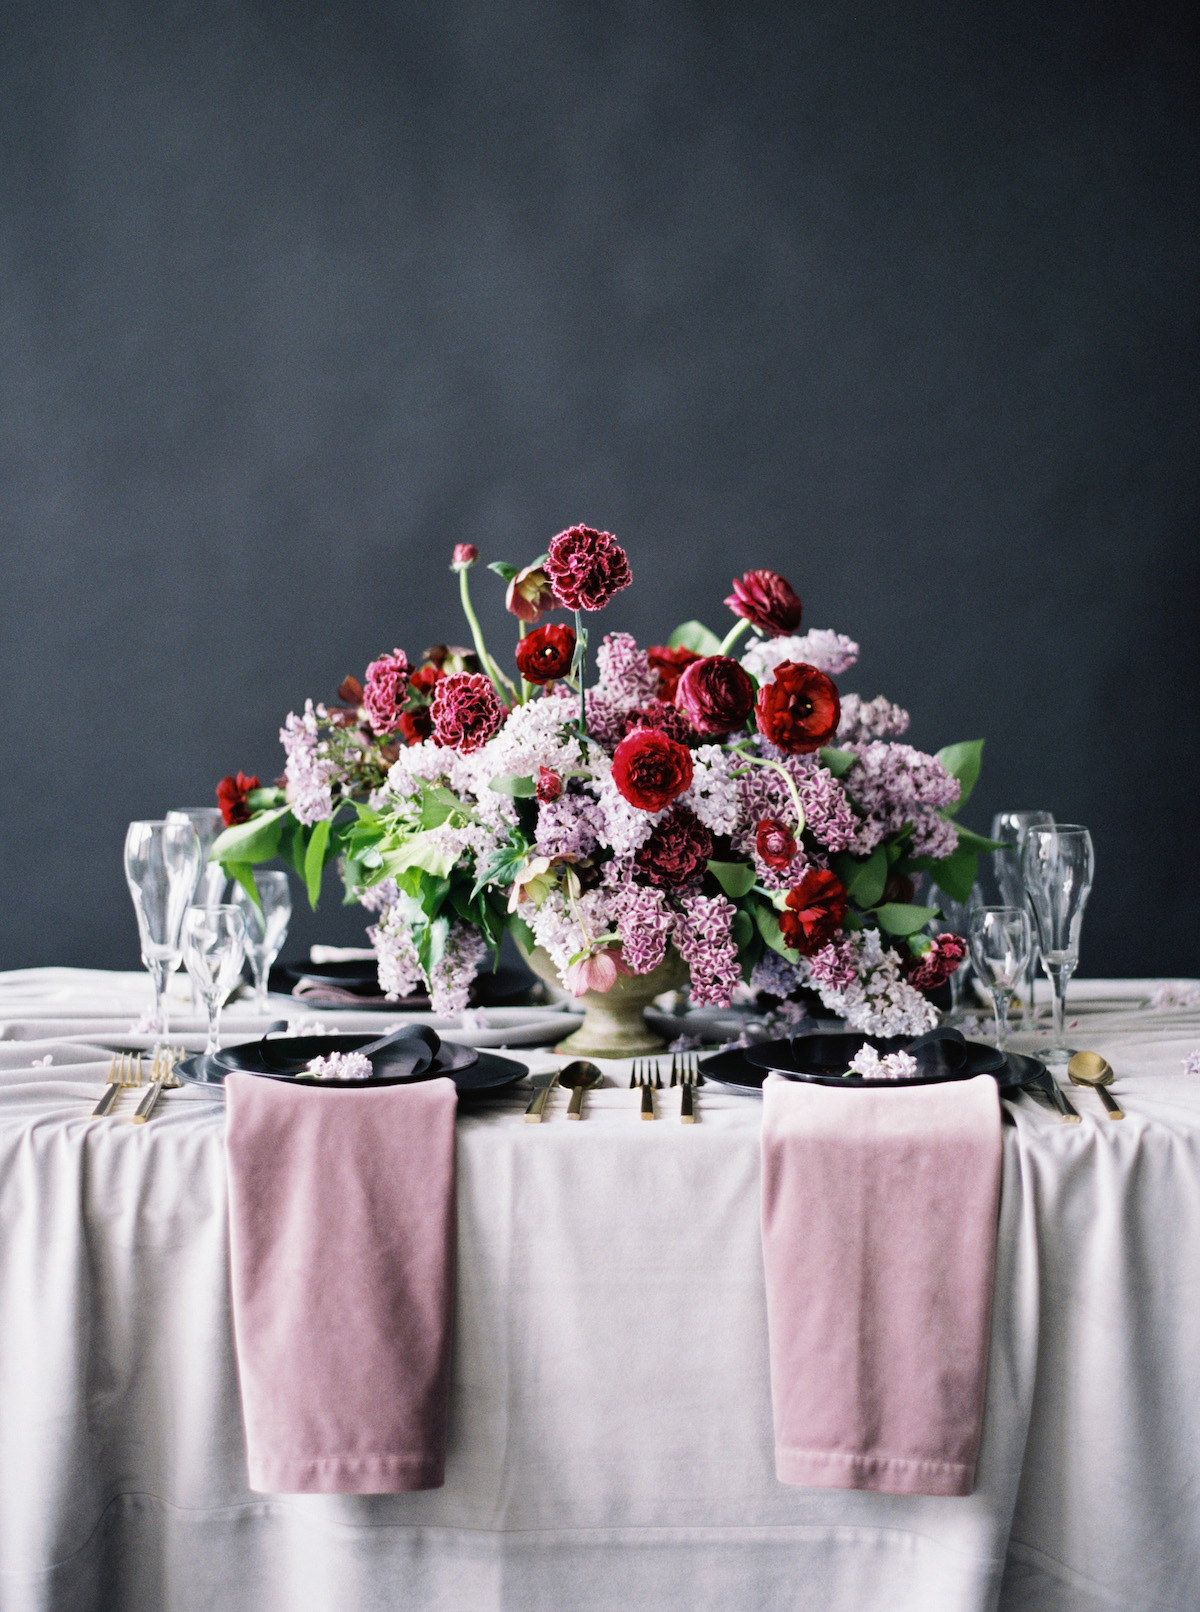 Moody wedding tablescape design